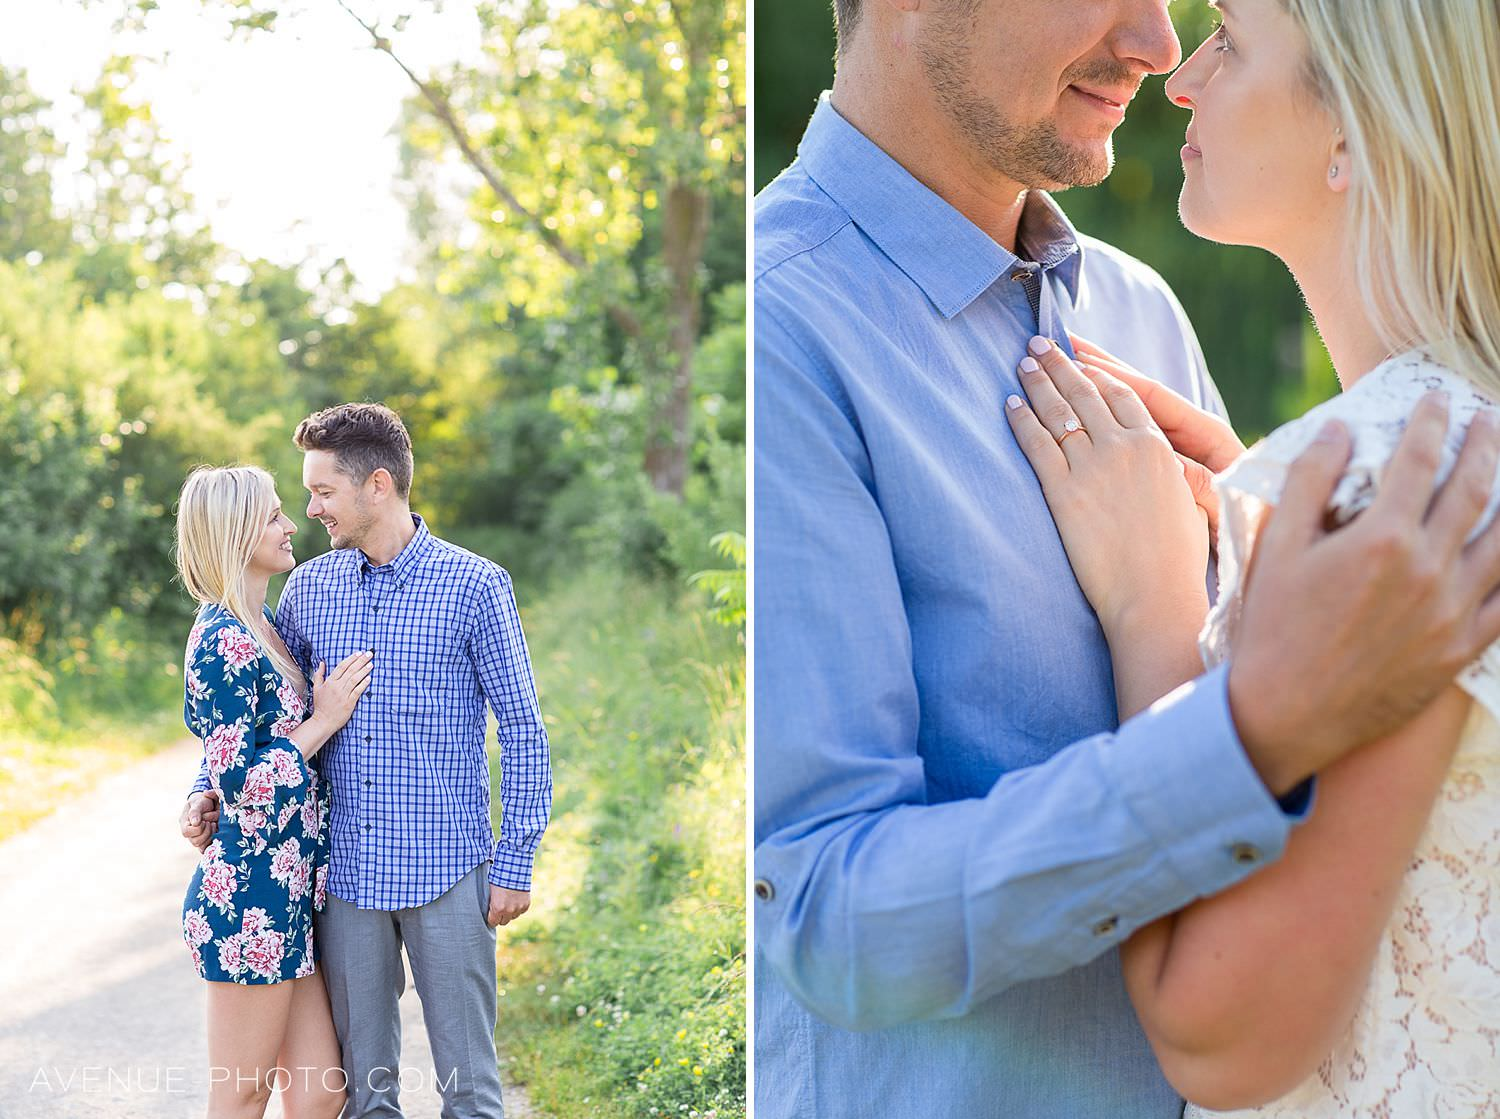 Toronto Sunrise Waterfront Engagement Photography, Humber bay bridge, Toronto Waterfront, sunrise engagement